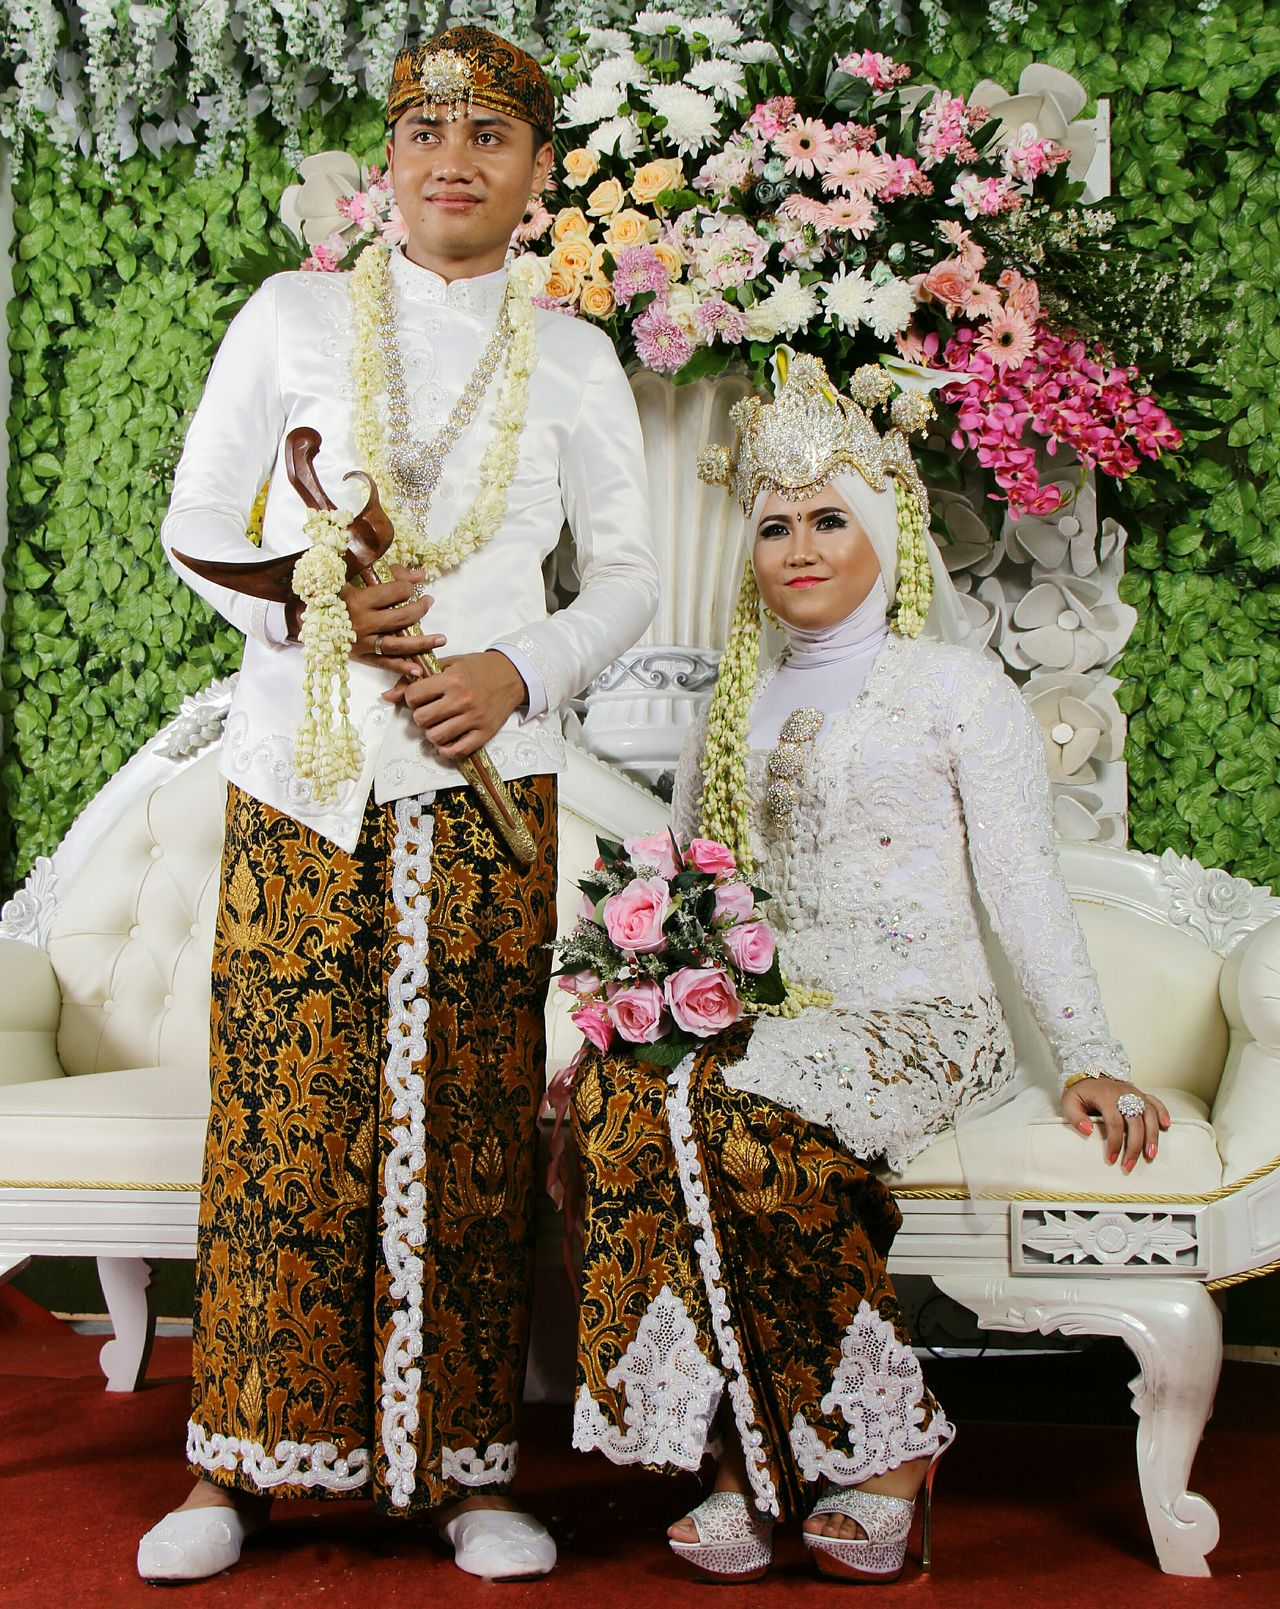 The Traditional Weddig Dress. Java, Indonesia. People History Cultures Religion Two People Traditional Traditional Culture Traditional Costume Traditional Dress Wedding Weddinginspiration Weddingdress Wedding Dress Traditionalwedding Adat Jawa Javanese Culture Javanese Tradition Full Length Archival Child Flower Females Adult Outdoors Day